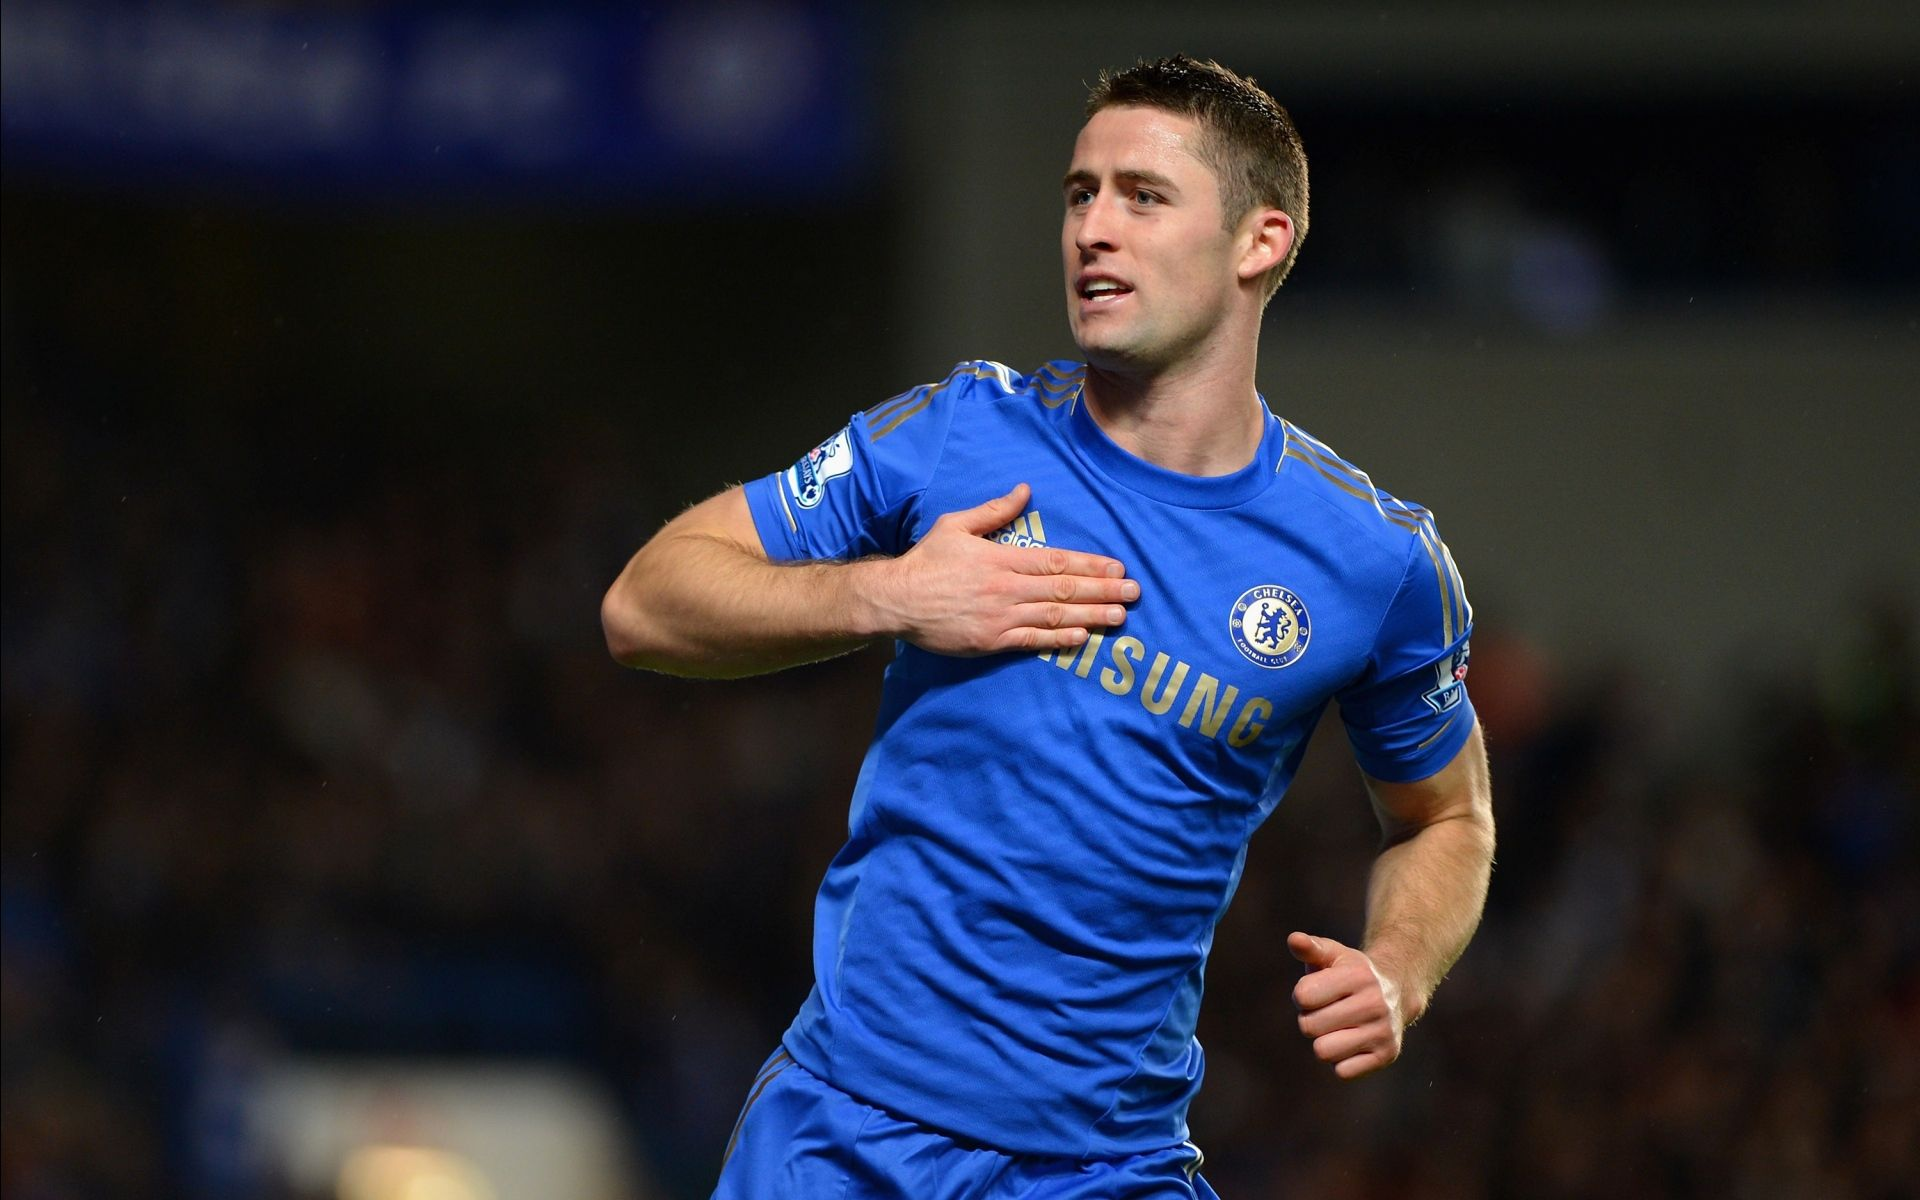 Gary Cahill in favorite outfit